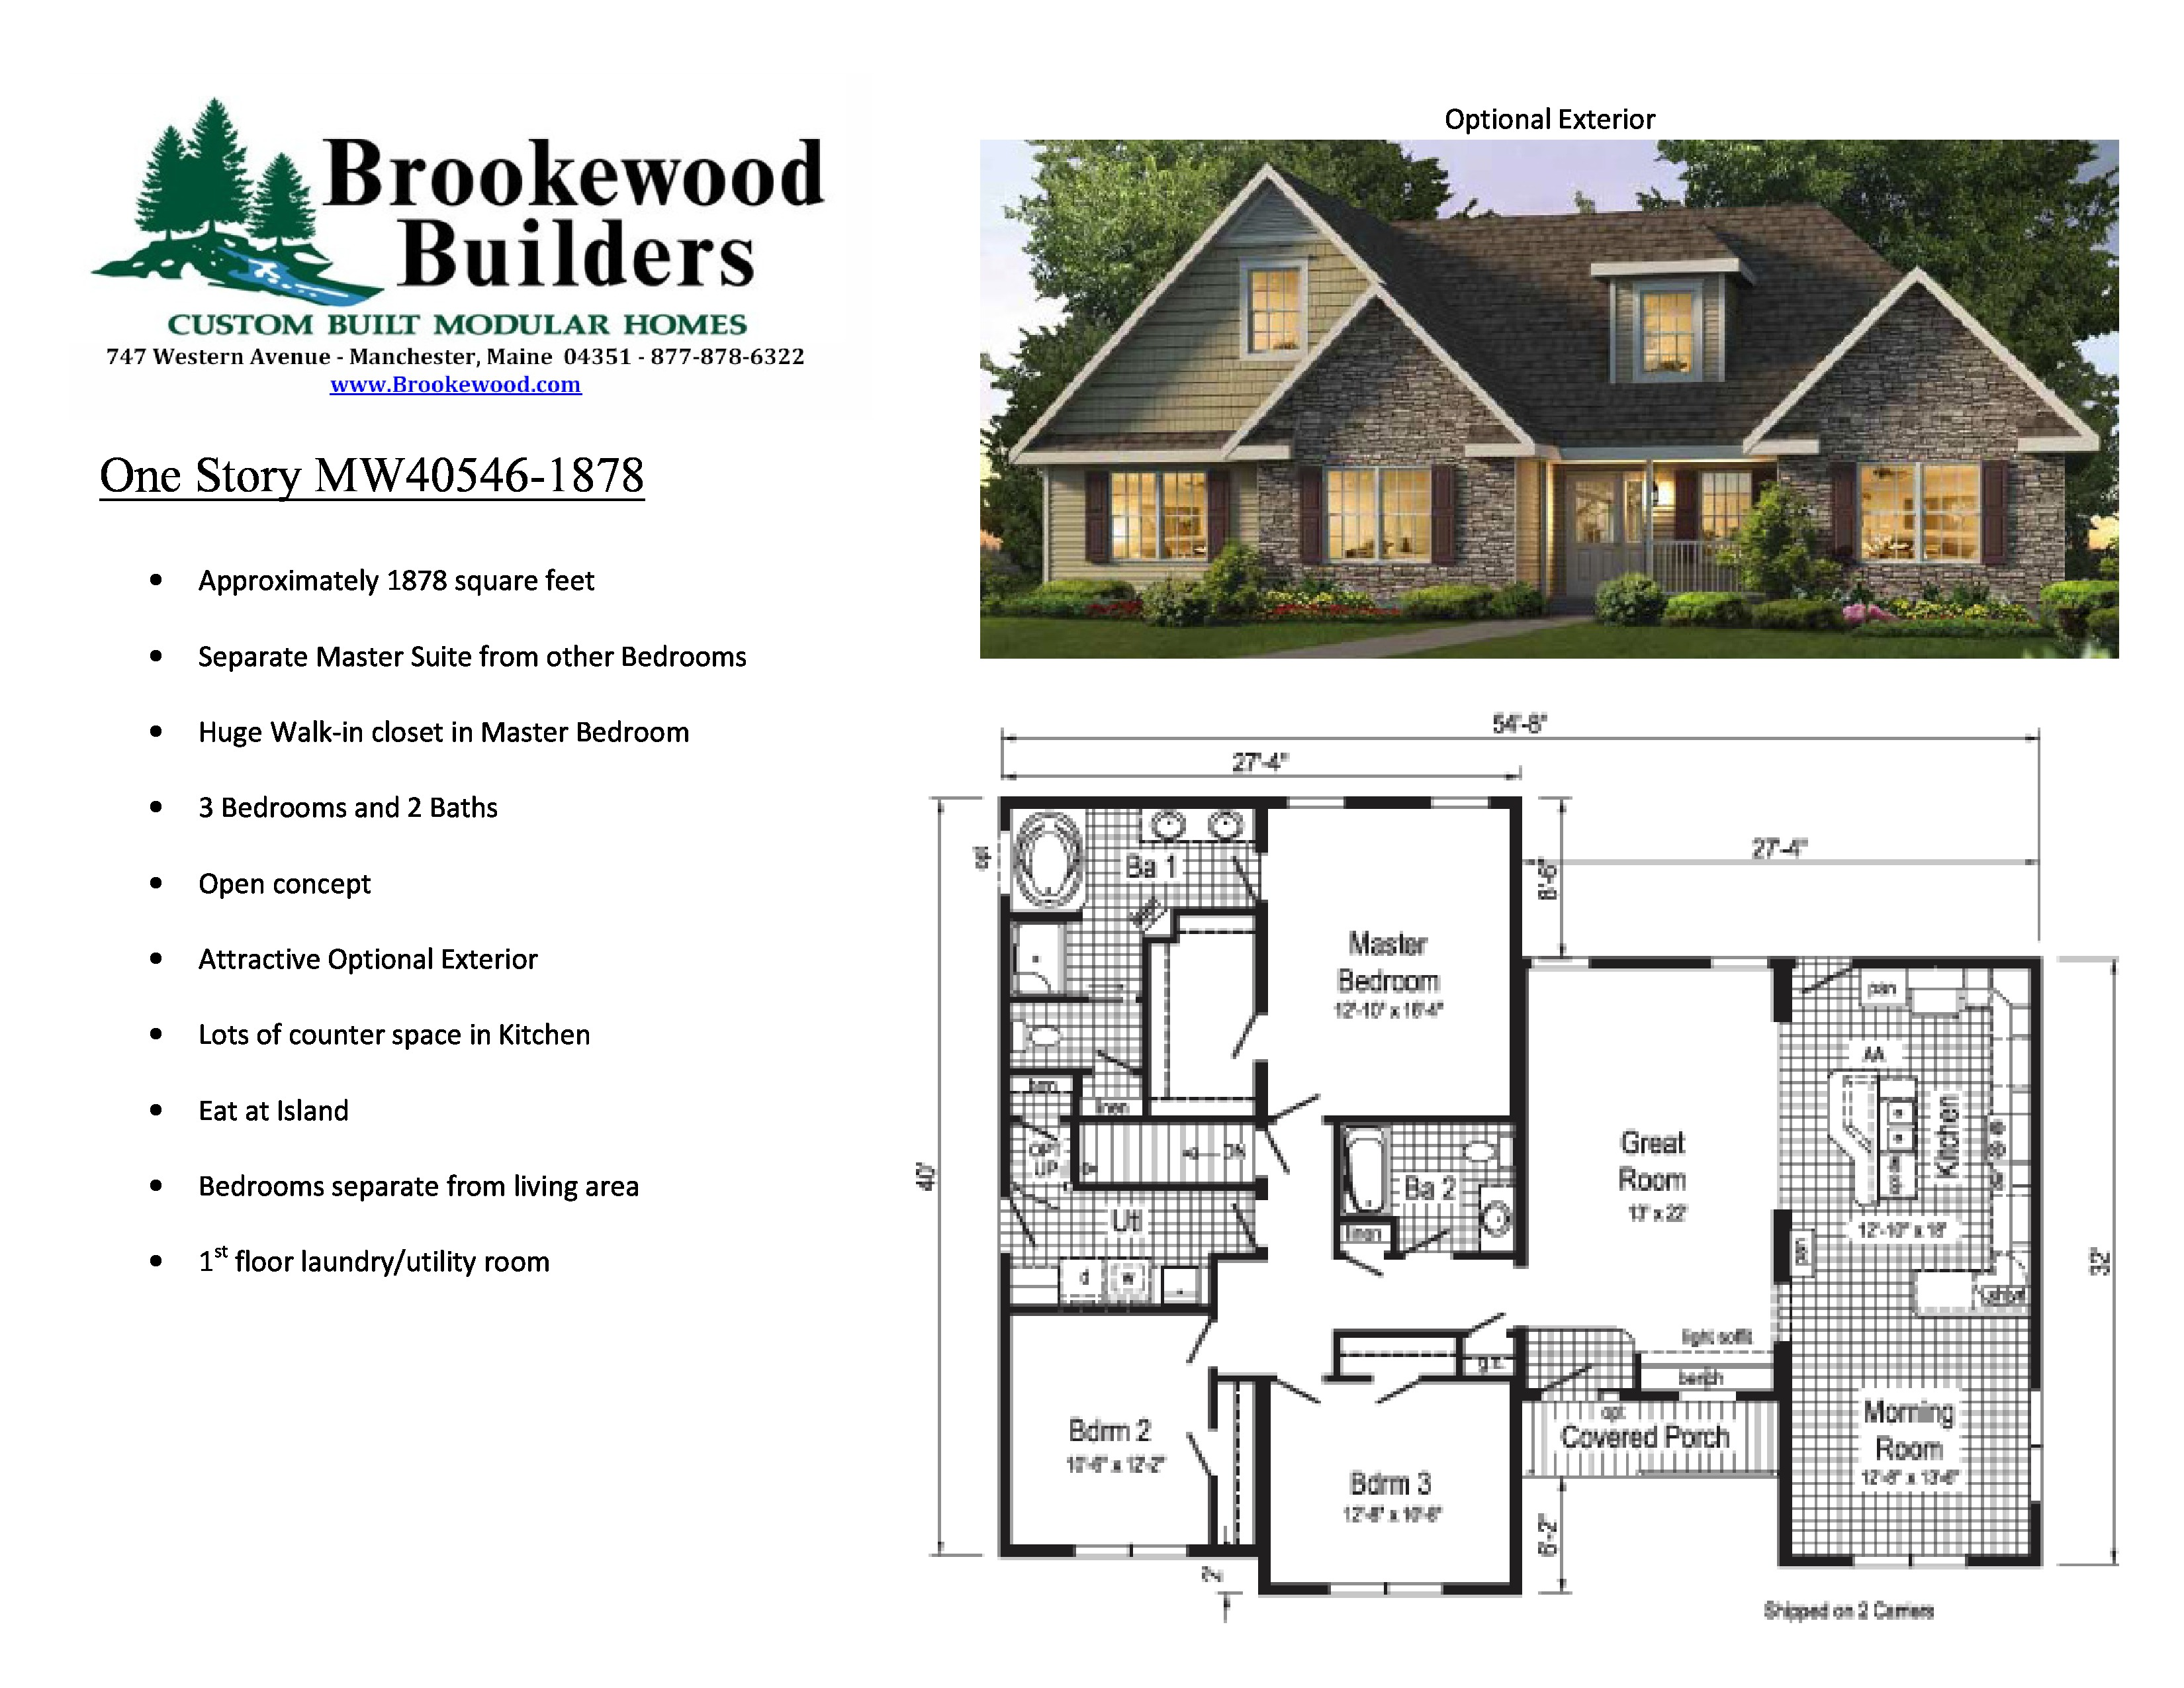 Free Home Plans | Brookewood Builders | Manchester Maine